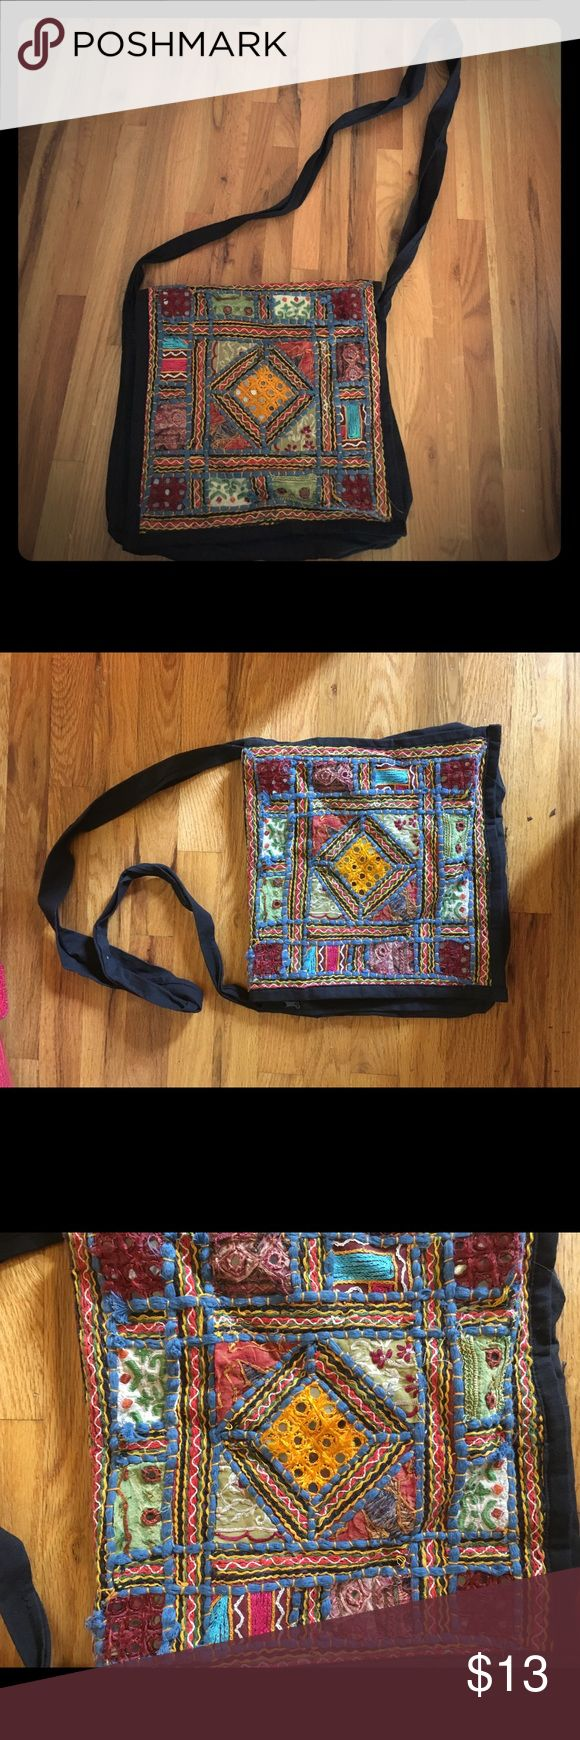 NWOT Crossbody bag from Indian fair trade I purchased this from a lovely woman at a fair trade market in a India. I have never been able to use it and would love to pass it on to someone who will! Bags Crossbody Bags